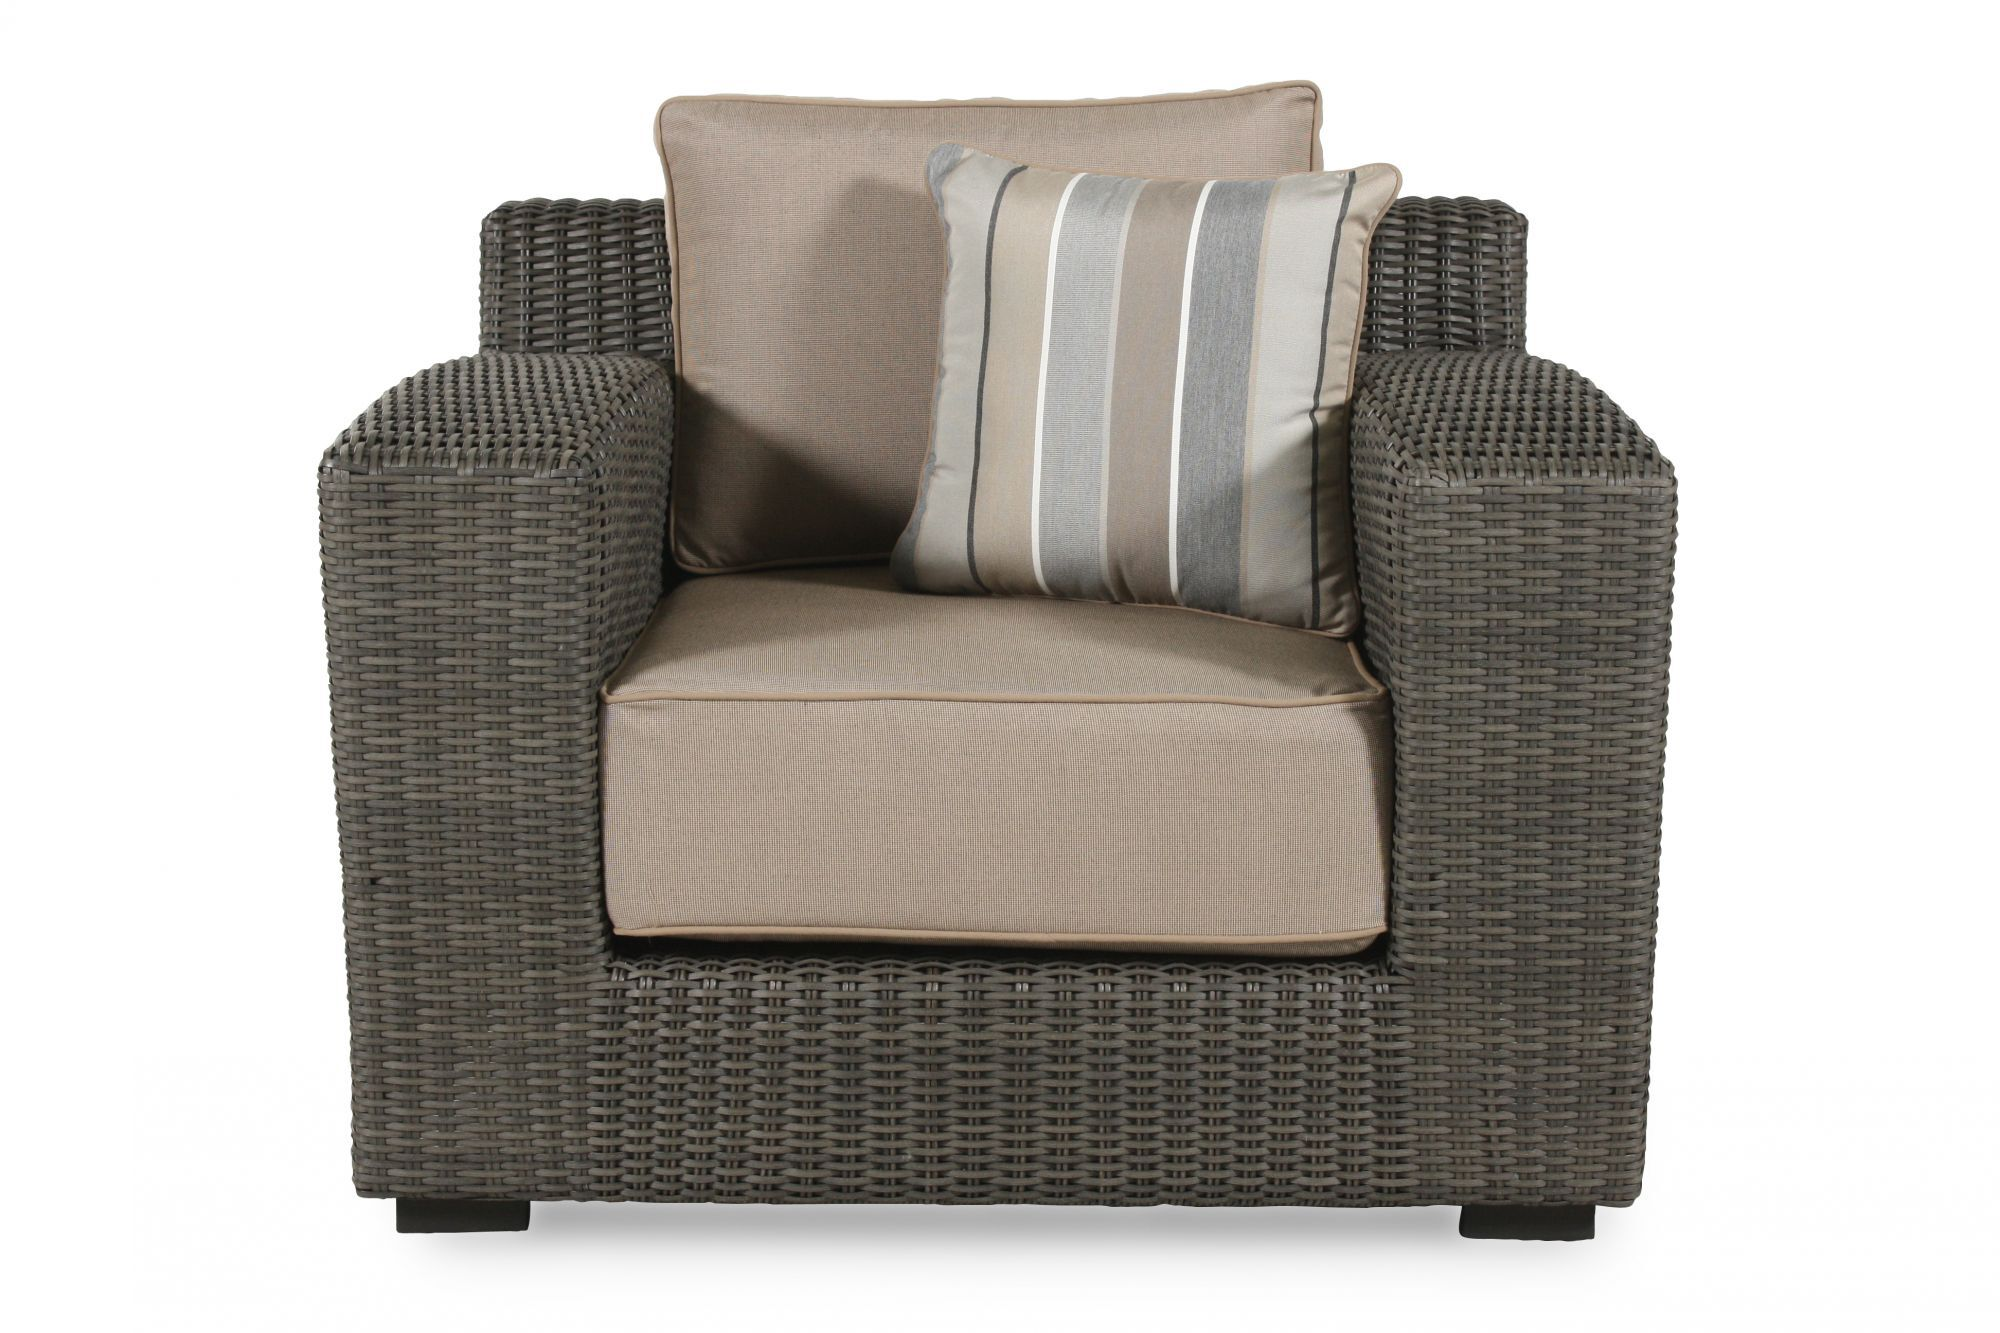 LowProfile Casual Lounge Chair in Dark Gray  Mathis